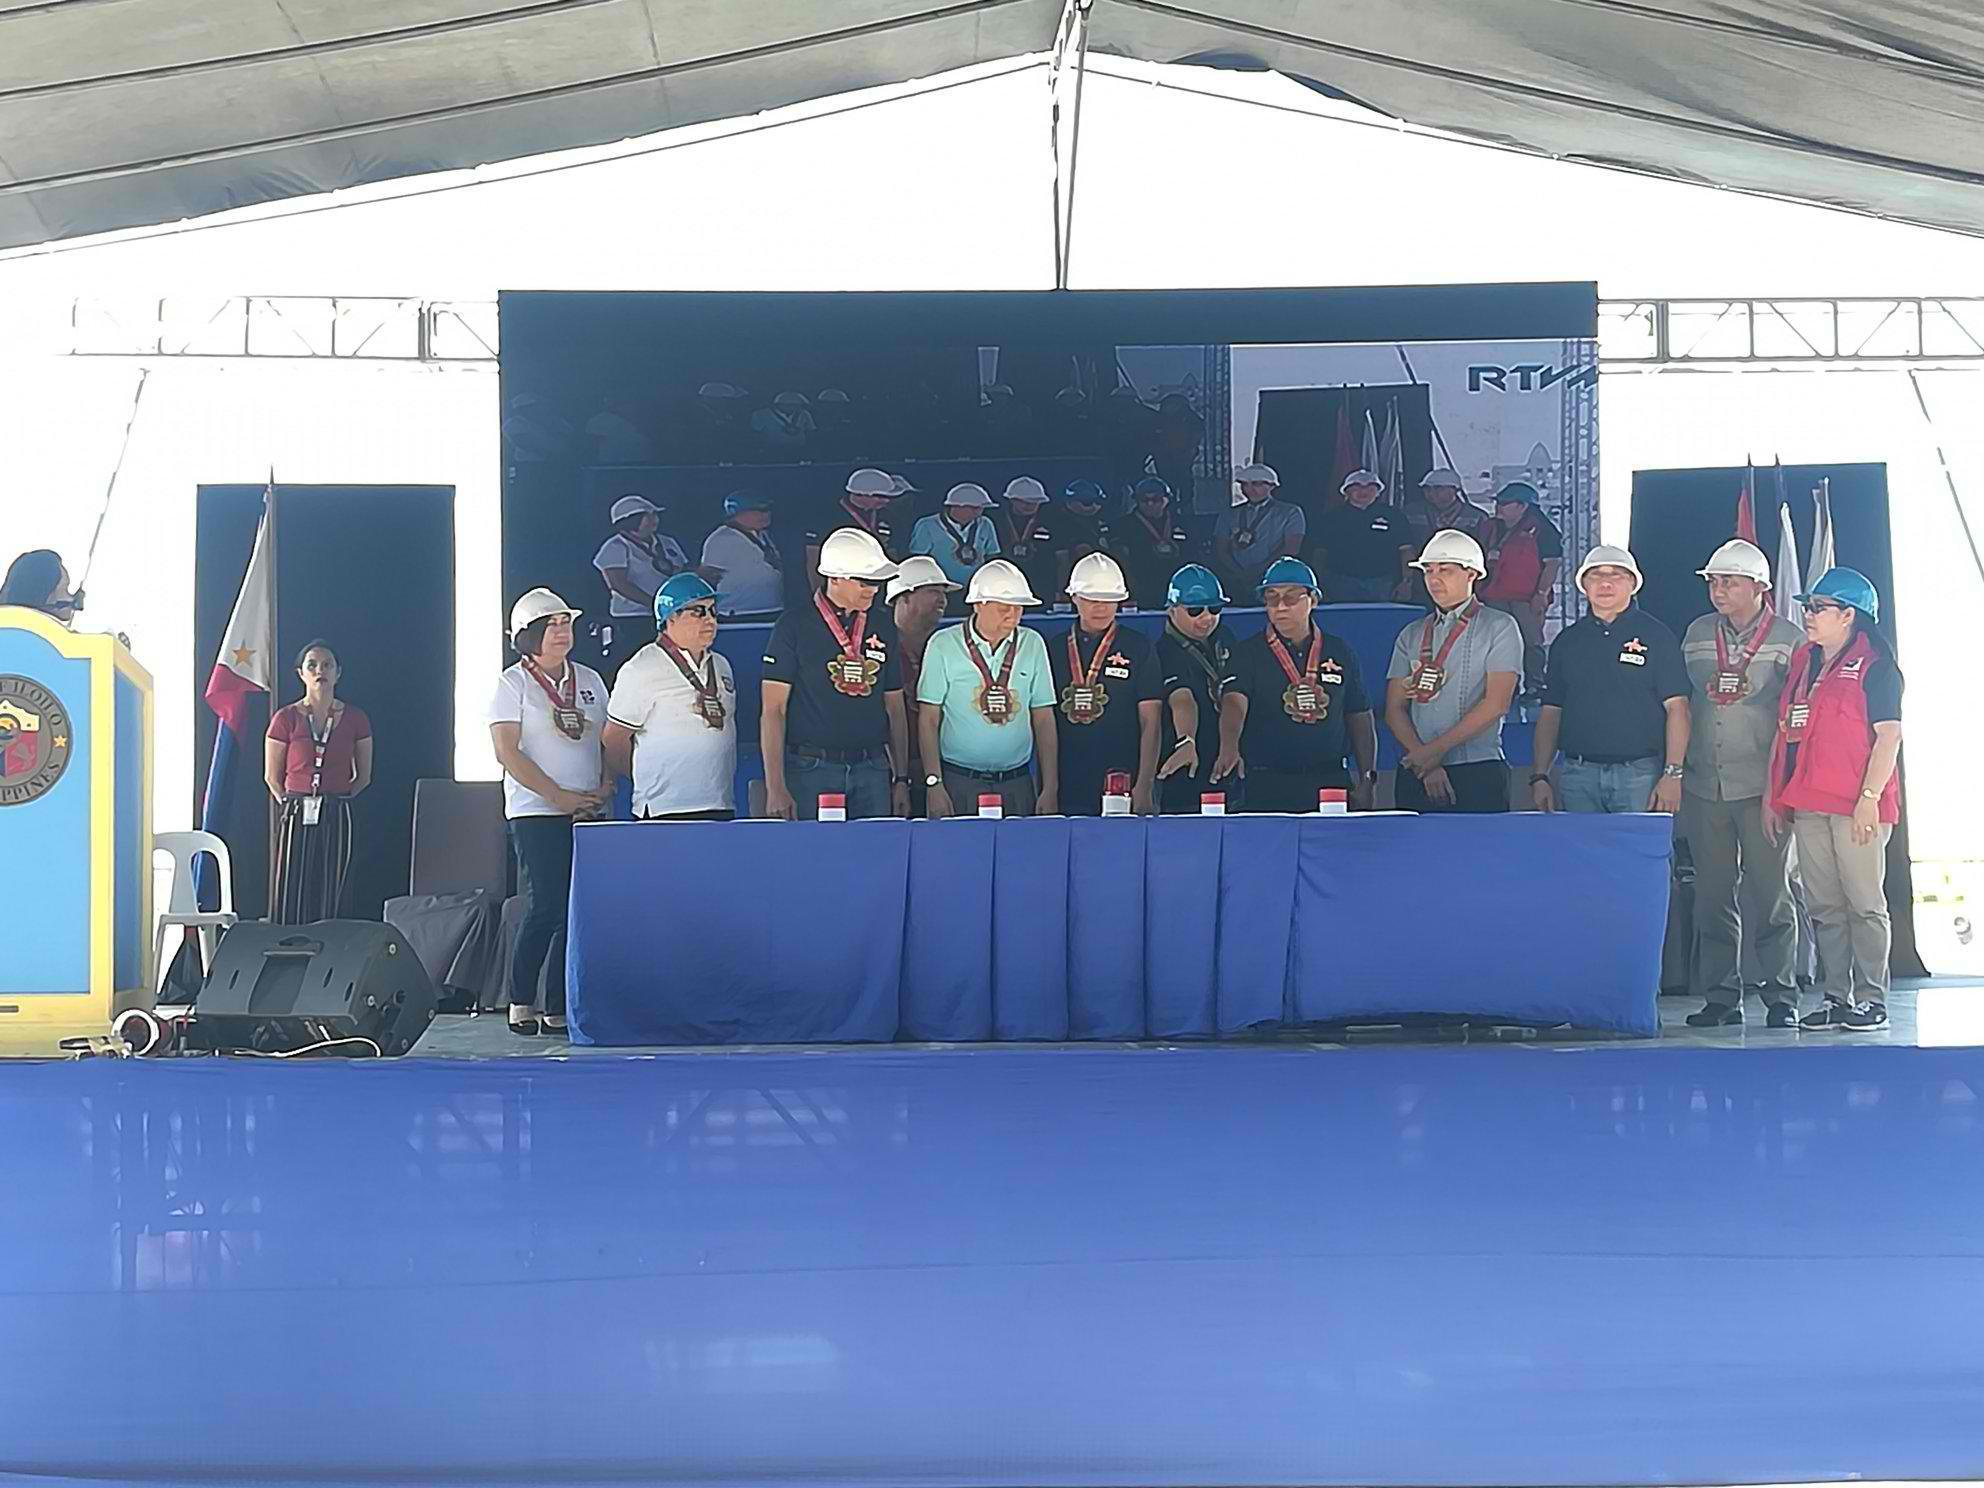 START. NDRRMC and local government officials lead the ceremonial pressing of the button to signal the start of the 1st Nationwide Simultaneous Earthquake Drill for 2019 at 2 pm on Thursday, February 21, 2019. Photo by Rhick Albay/Rappler